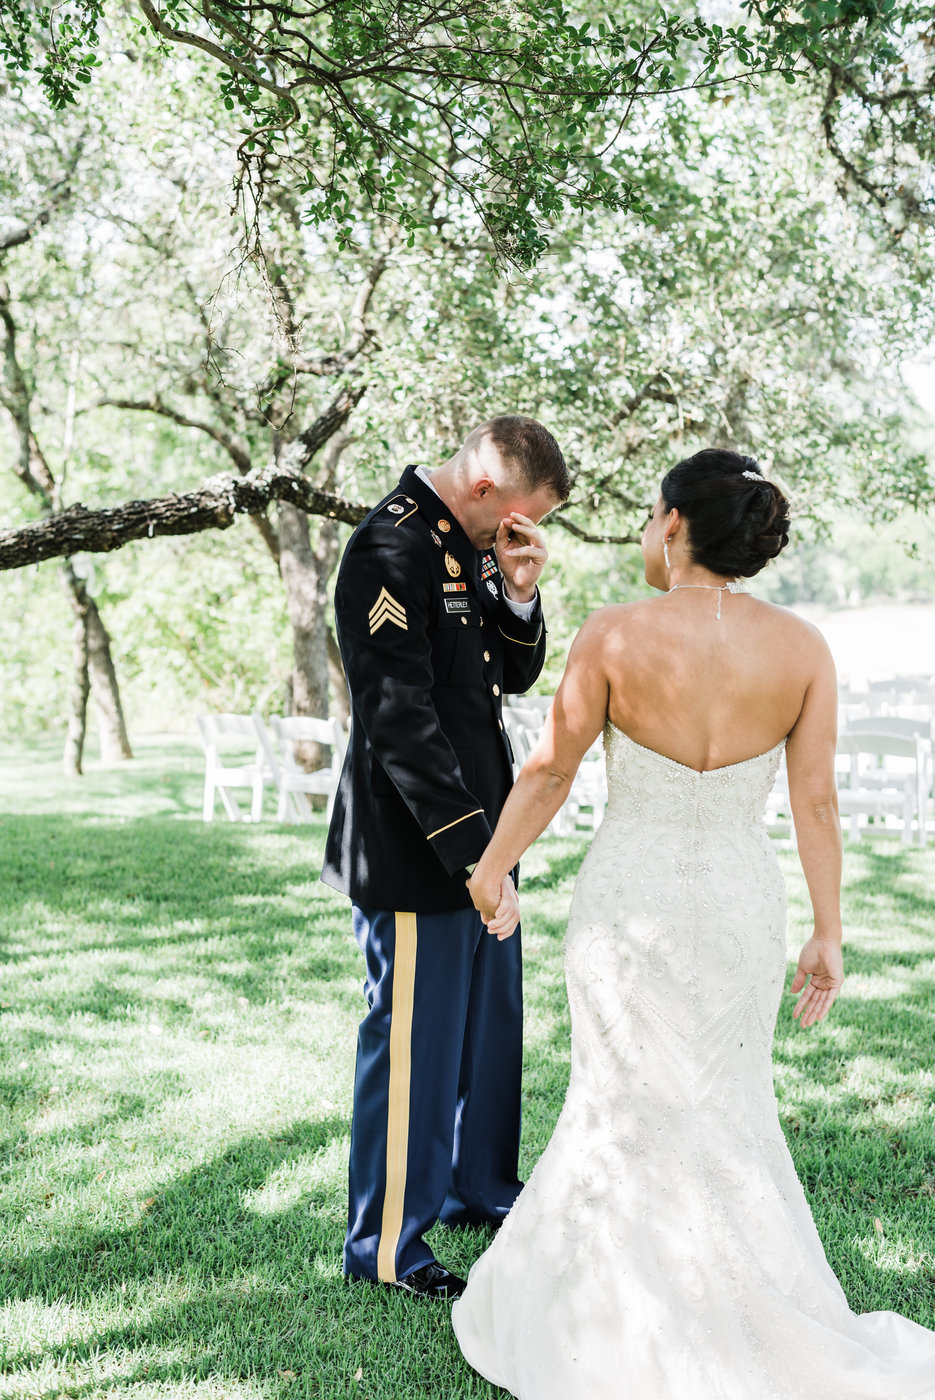 Military groom wiping tear after seeing bride